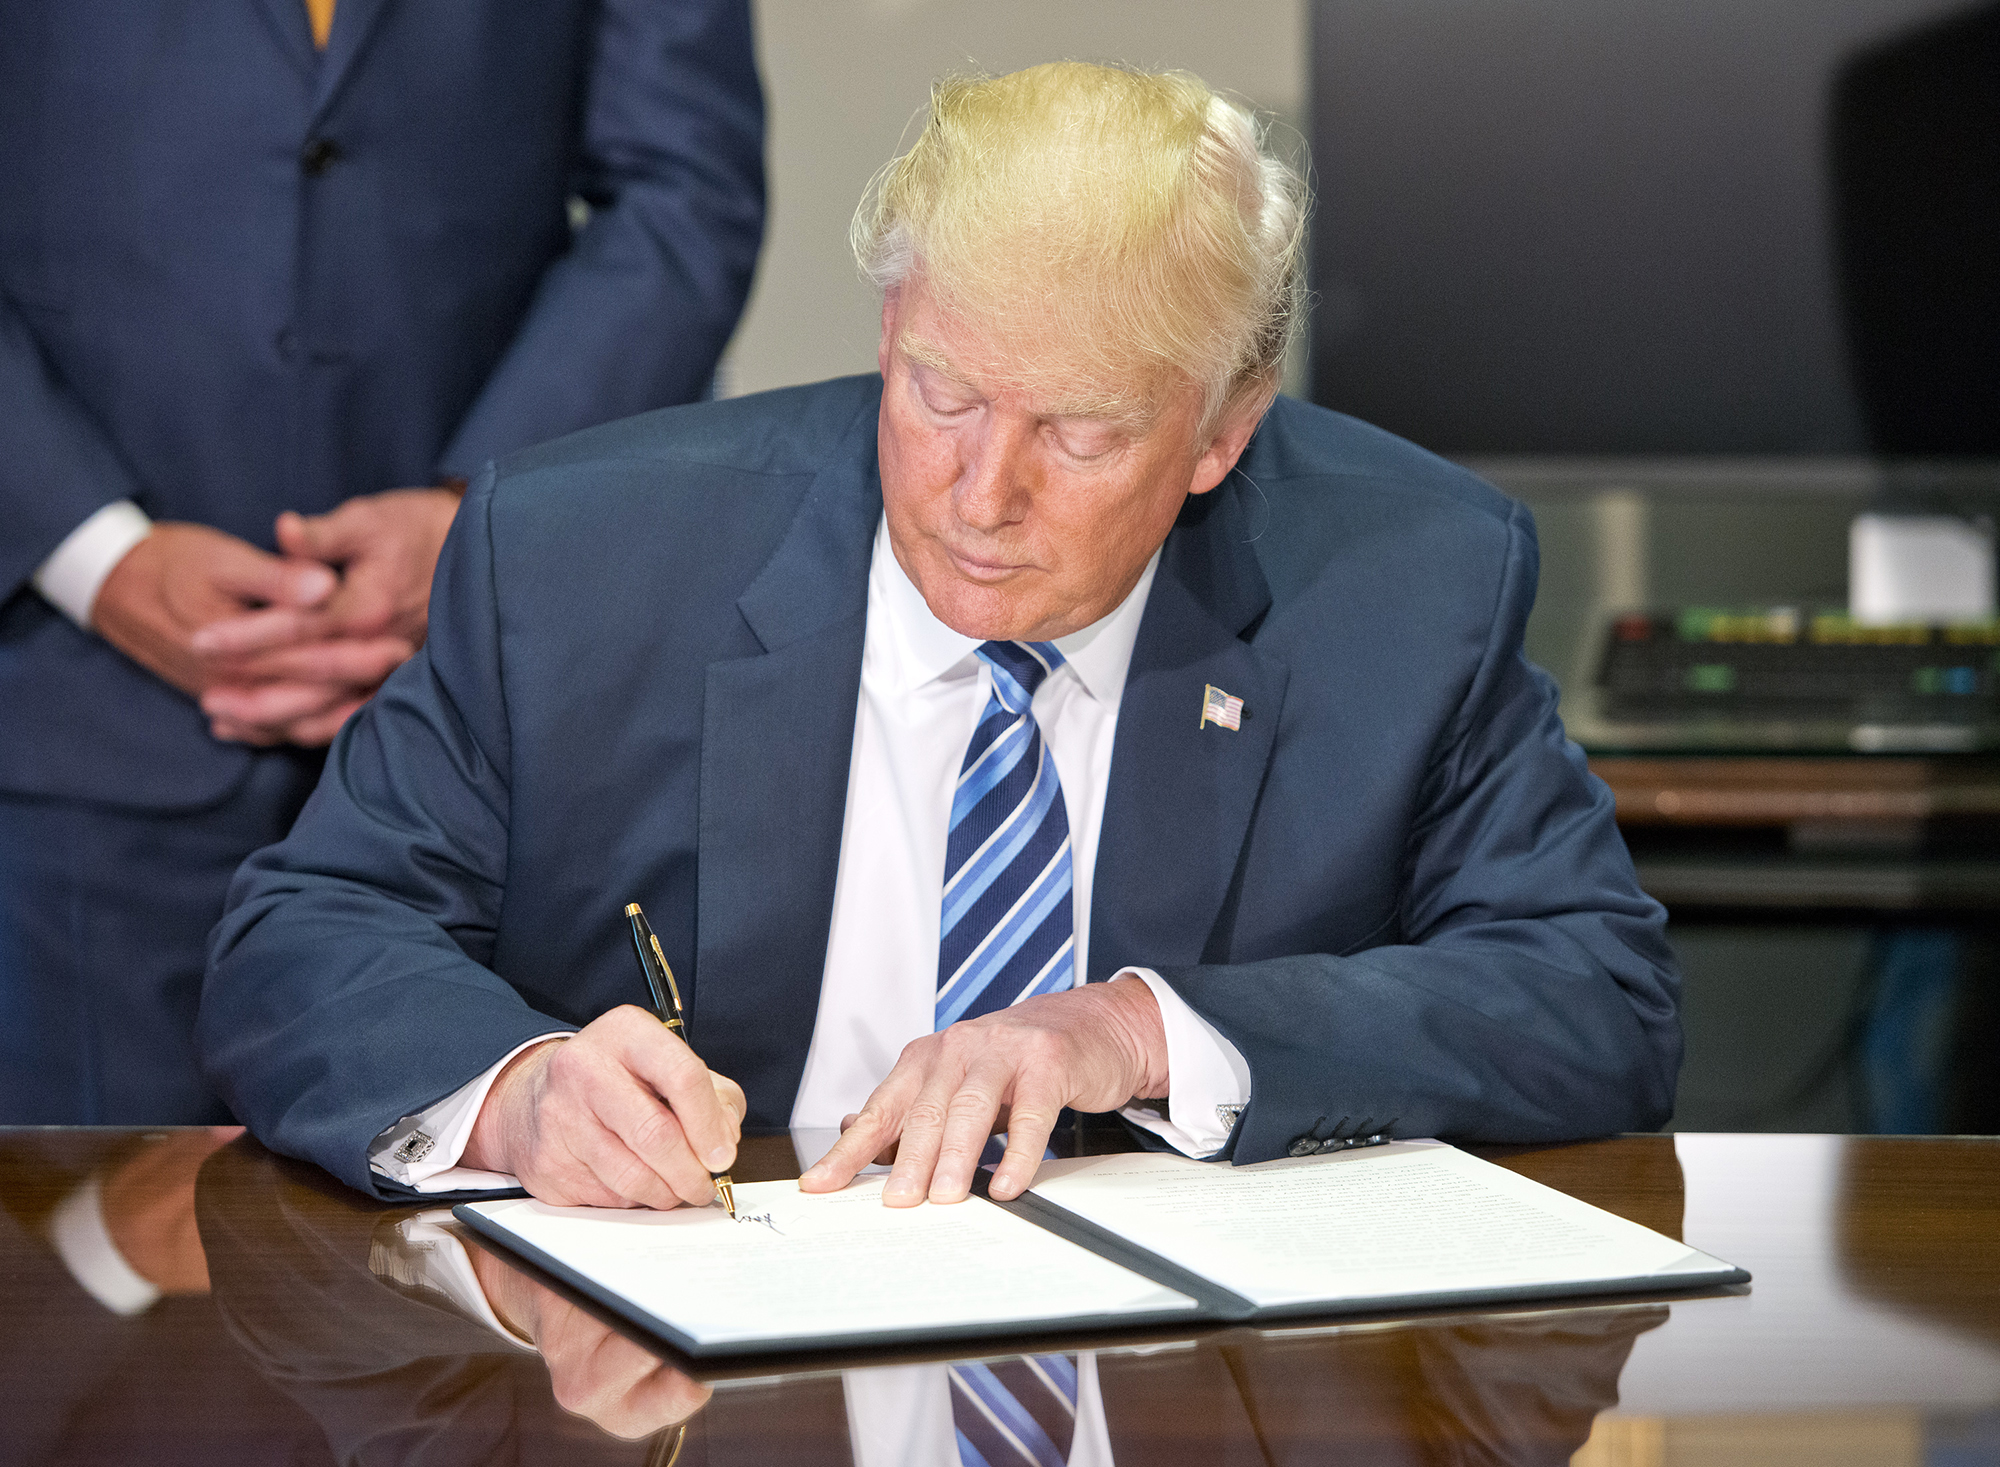 Donald Trump signs the first of three Executive Orders concerning financial services at the Department of the Treasury in Washington, D.C., on April 21, 2017.